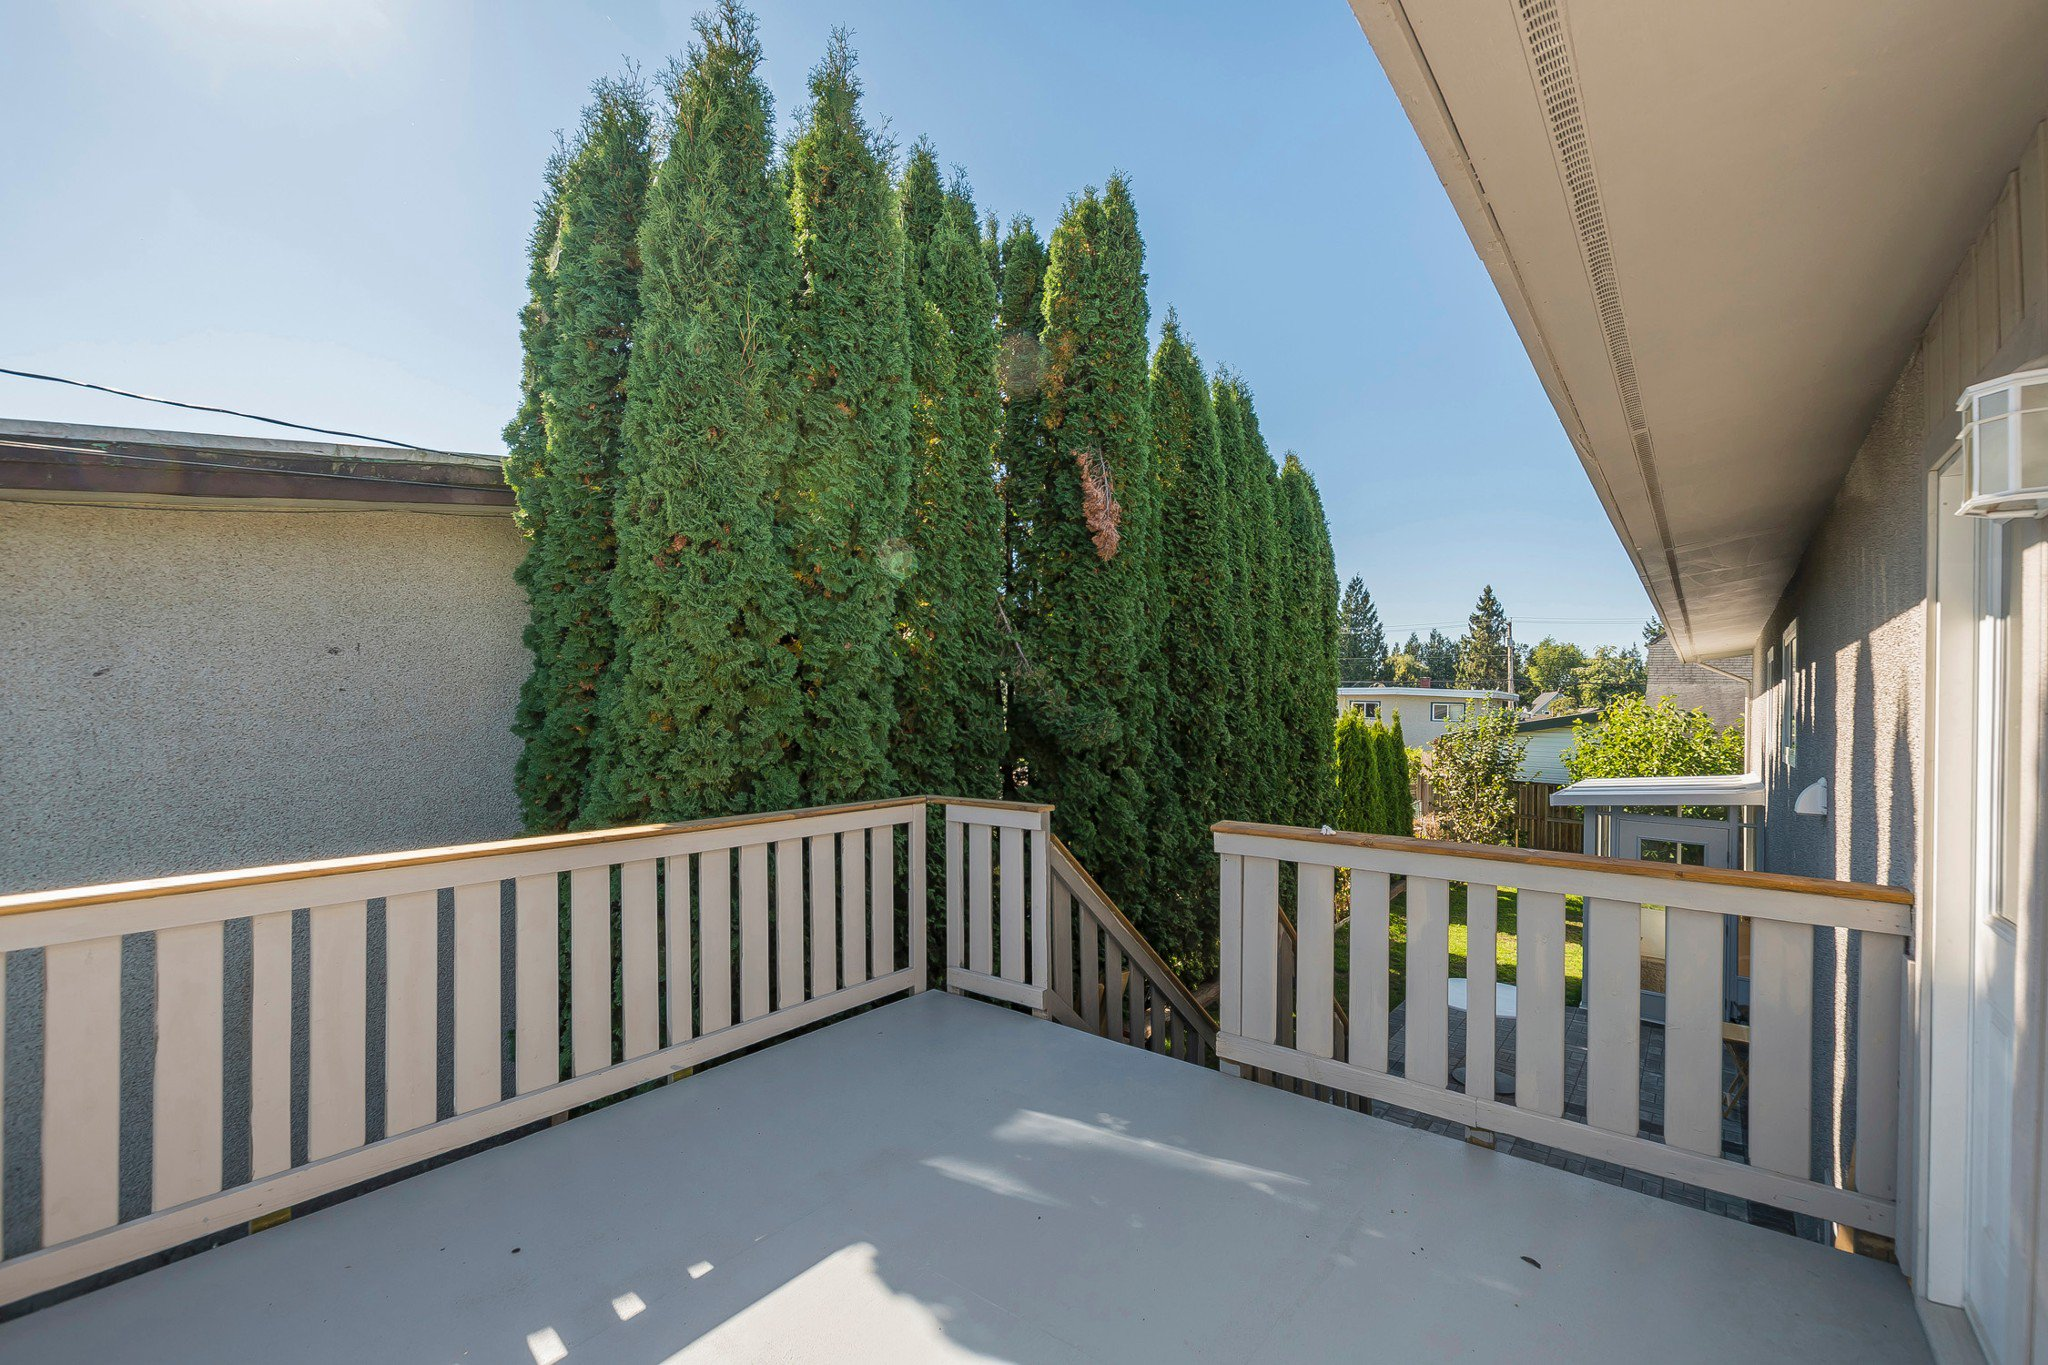 Photo 18: Photos: 46240 Reece: Chilliwack House for sale : MLS®# R2211935